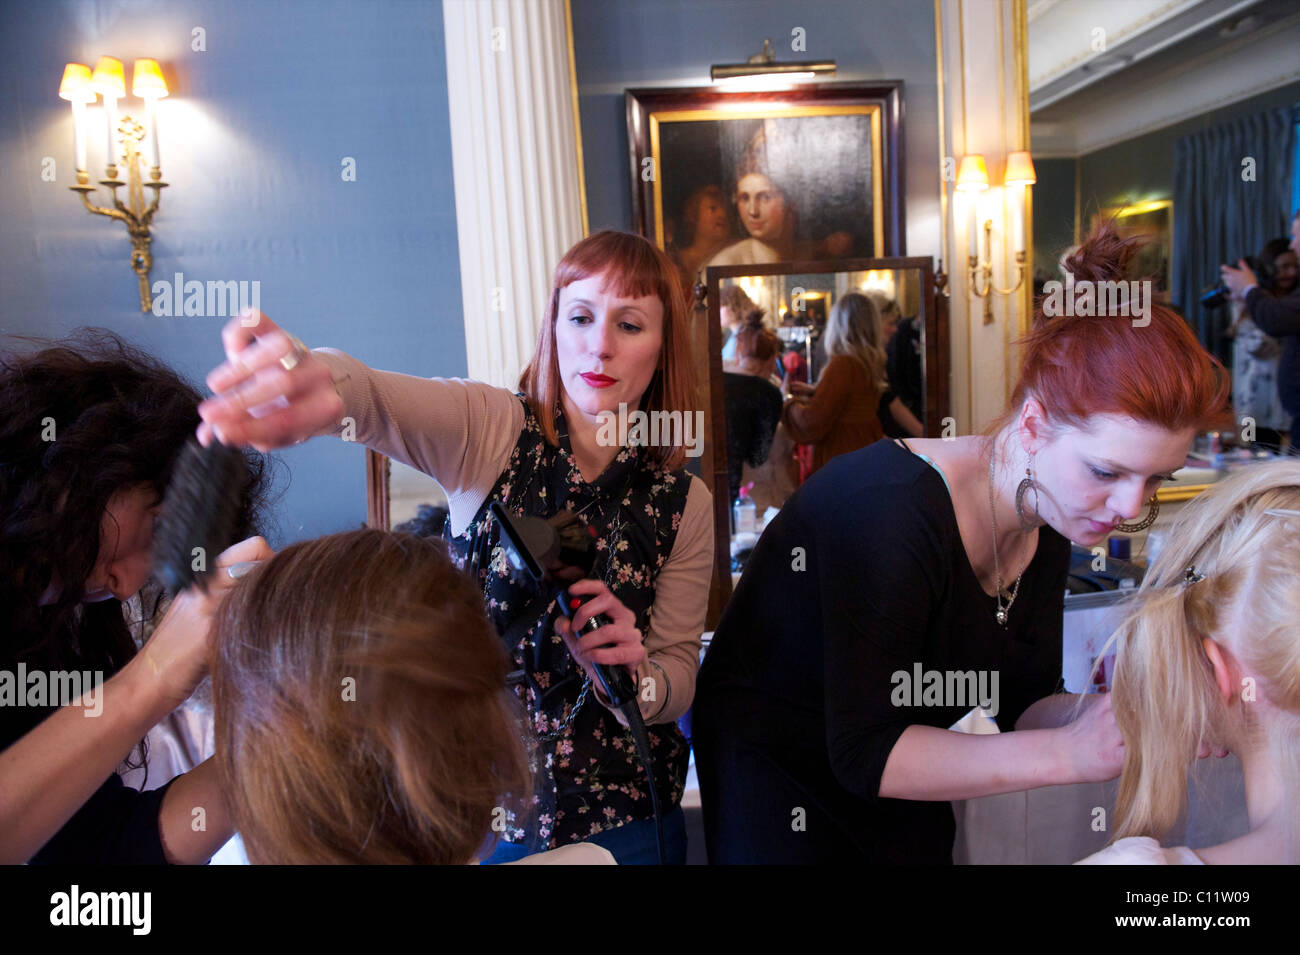 Stylists prepare models backstage before Saloni autumn 2011 collection at the Savile Club in London on 18 February - Stock Image